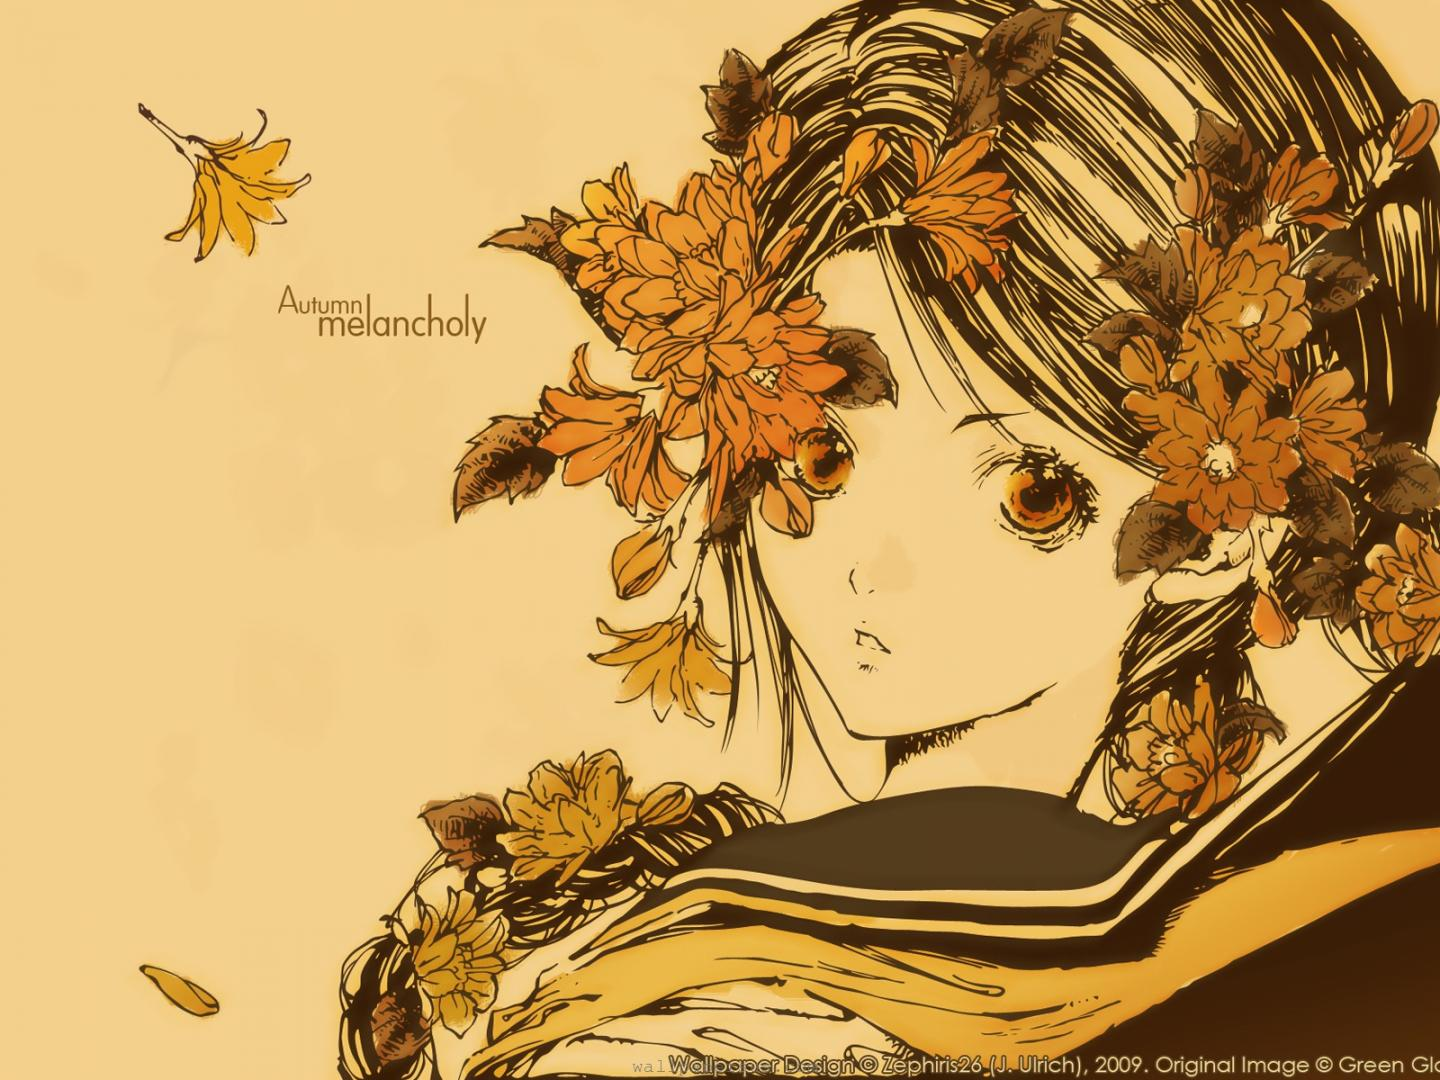 Anime Autumn Melancholy wallpapers55com   Best Wallpapers for PCs 1440x1080